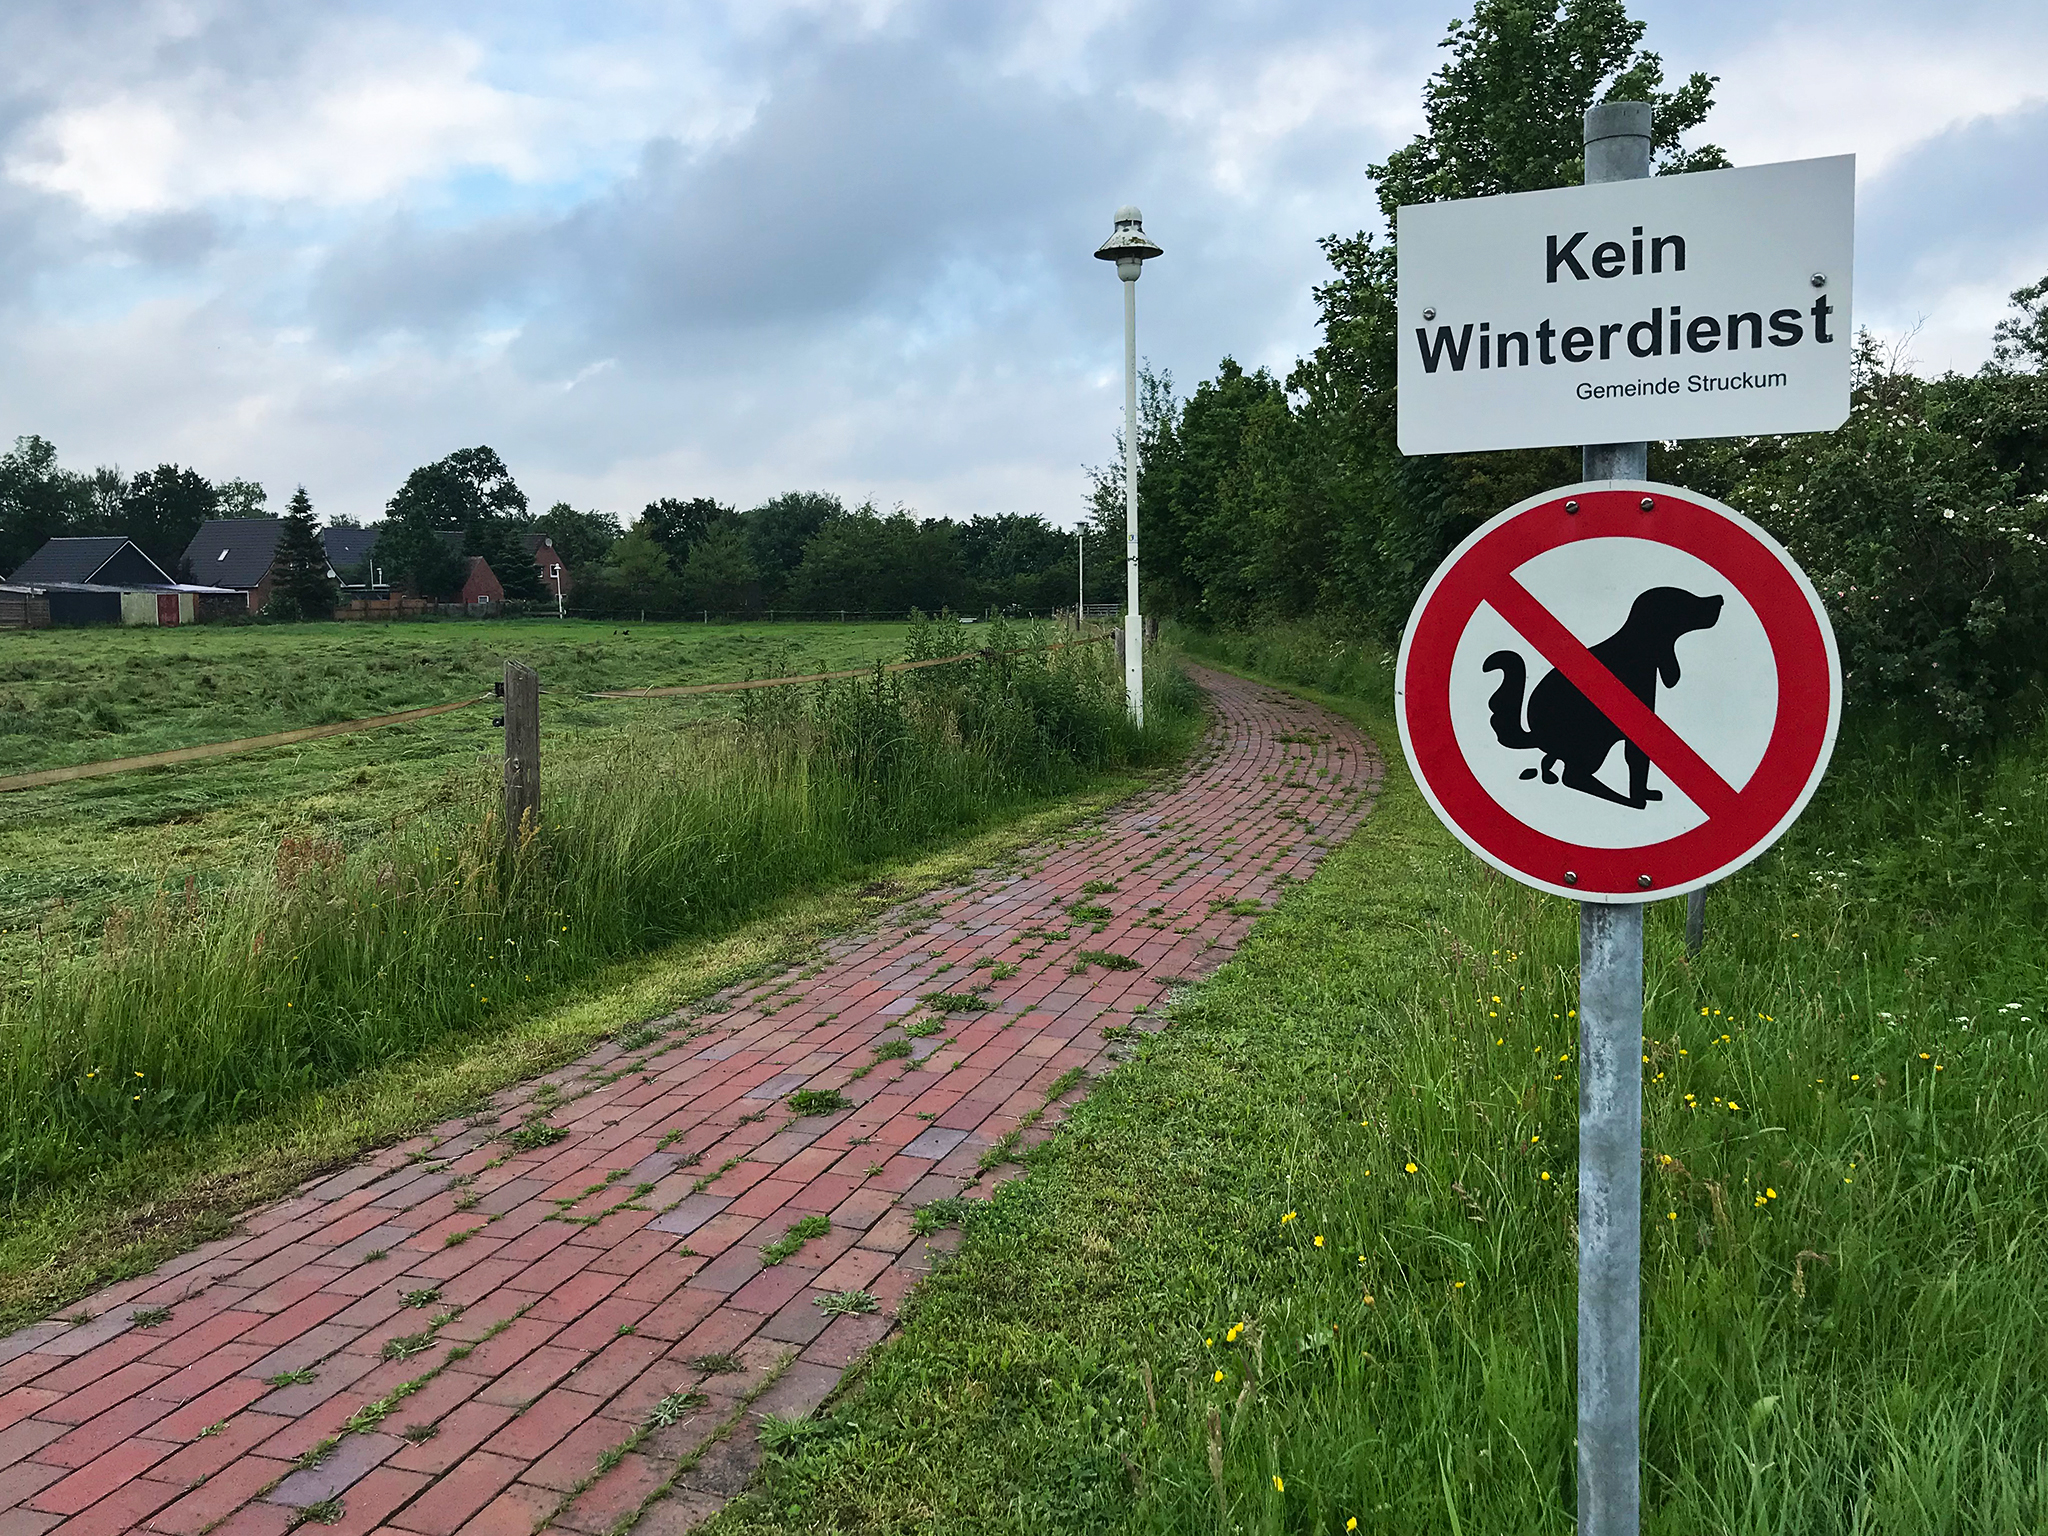 Sign says no winter service. So, no pooping dogs in winter?